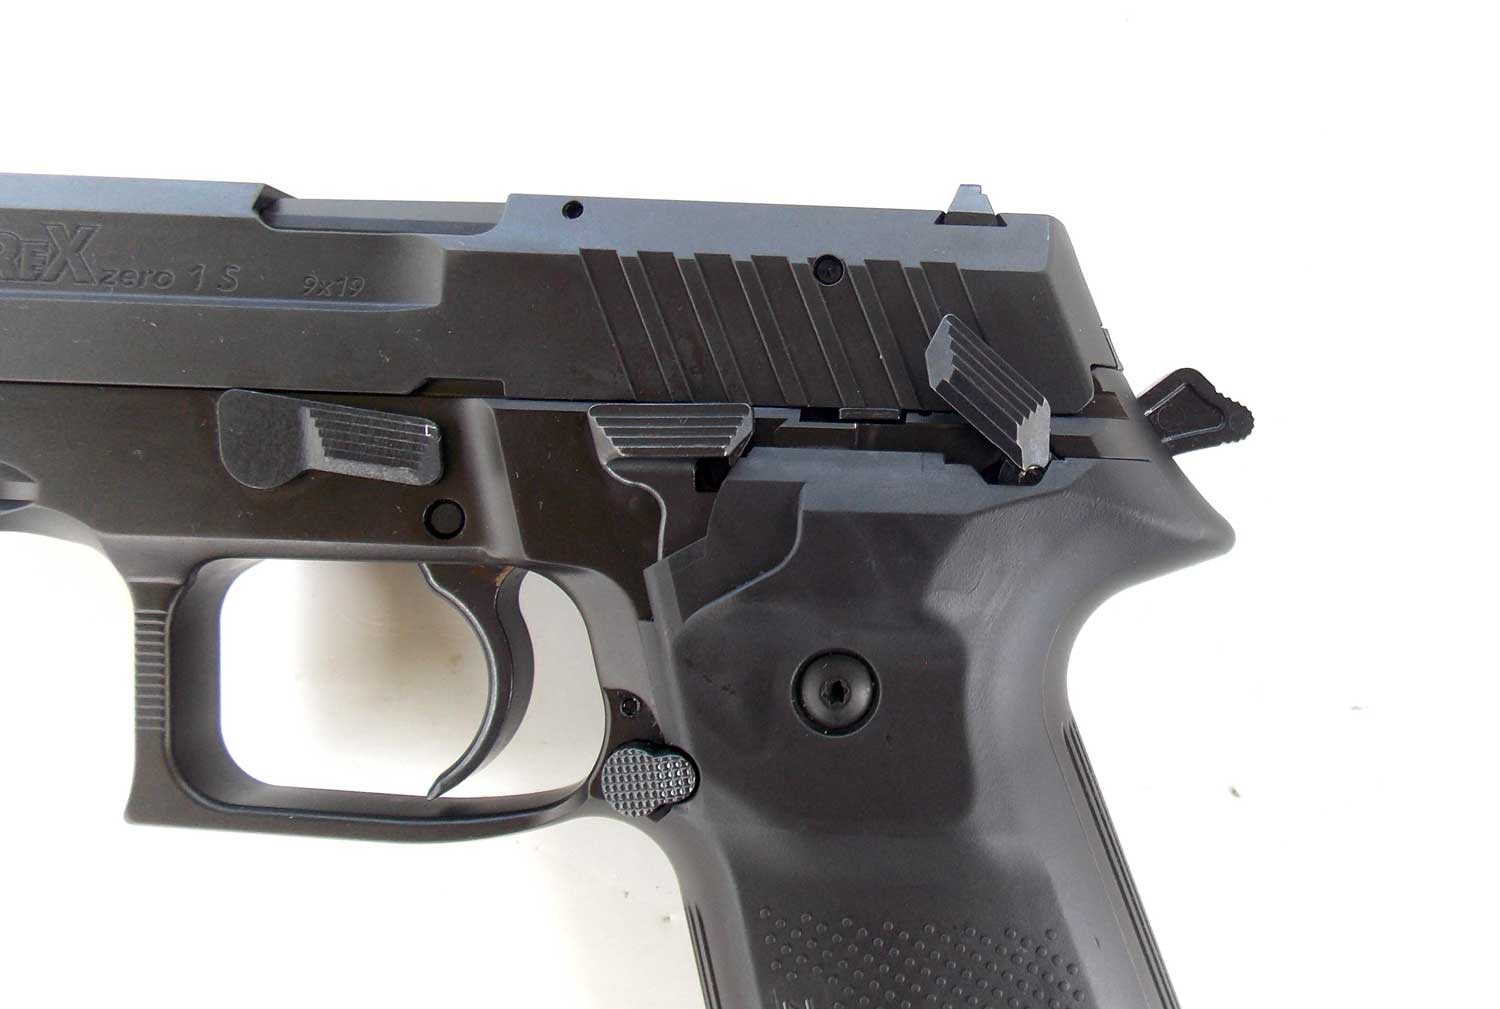 Safety on the Arex Rex Zero 1 pistol